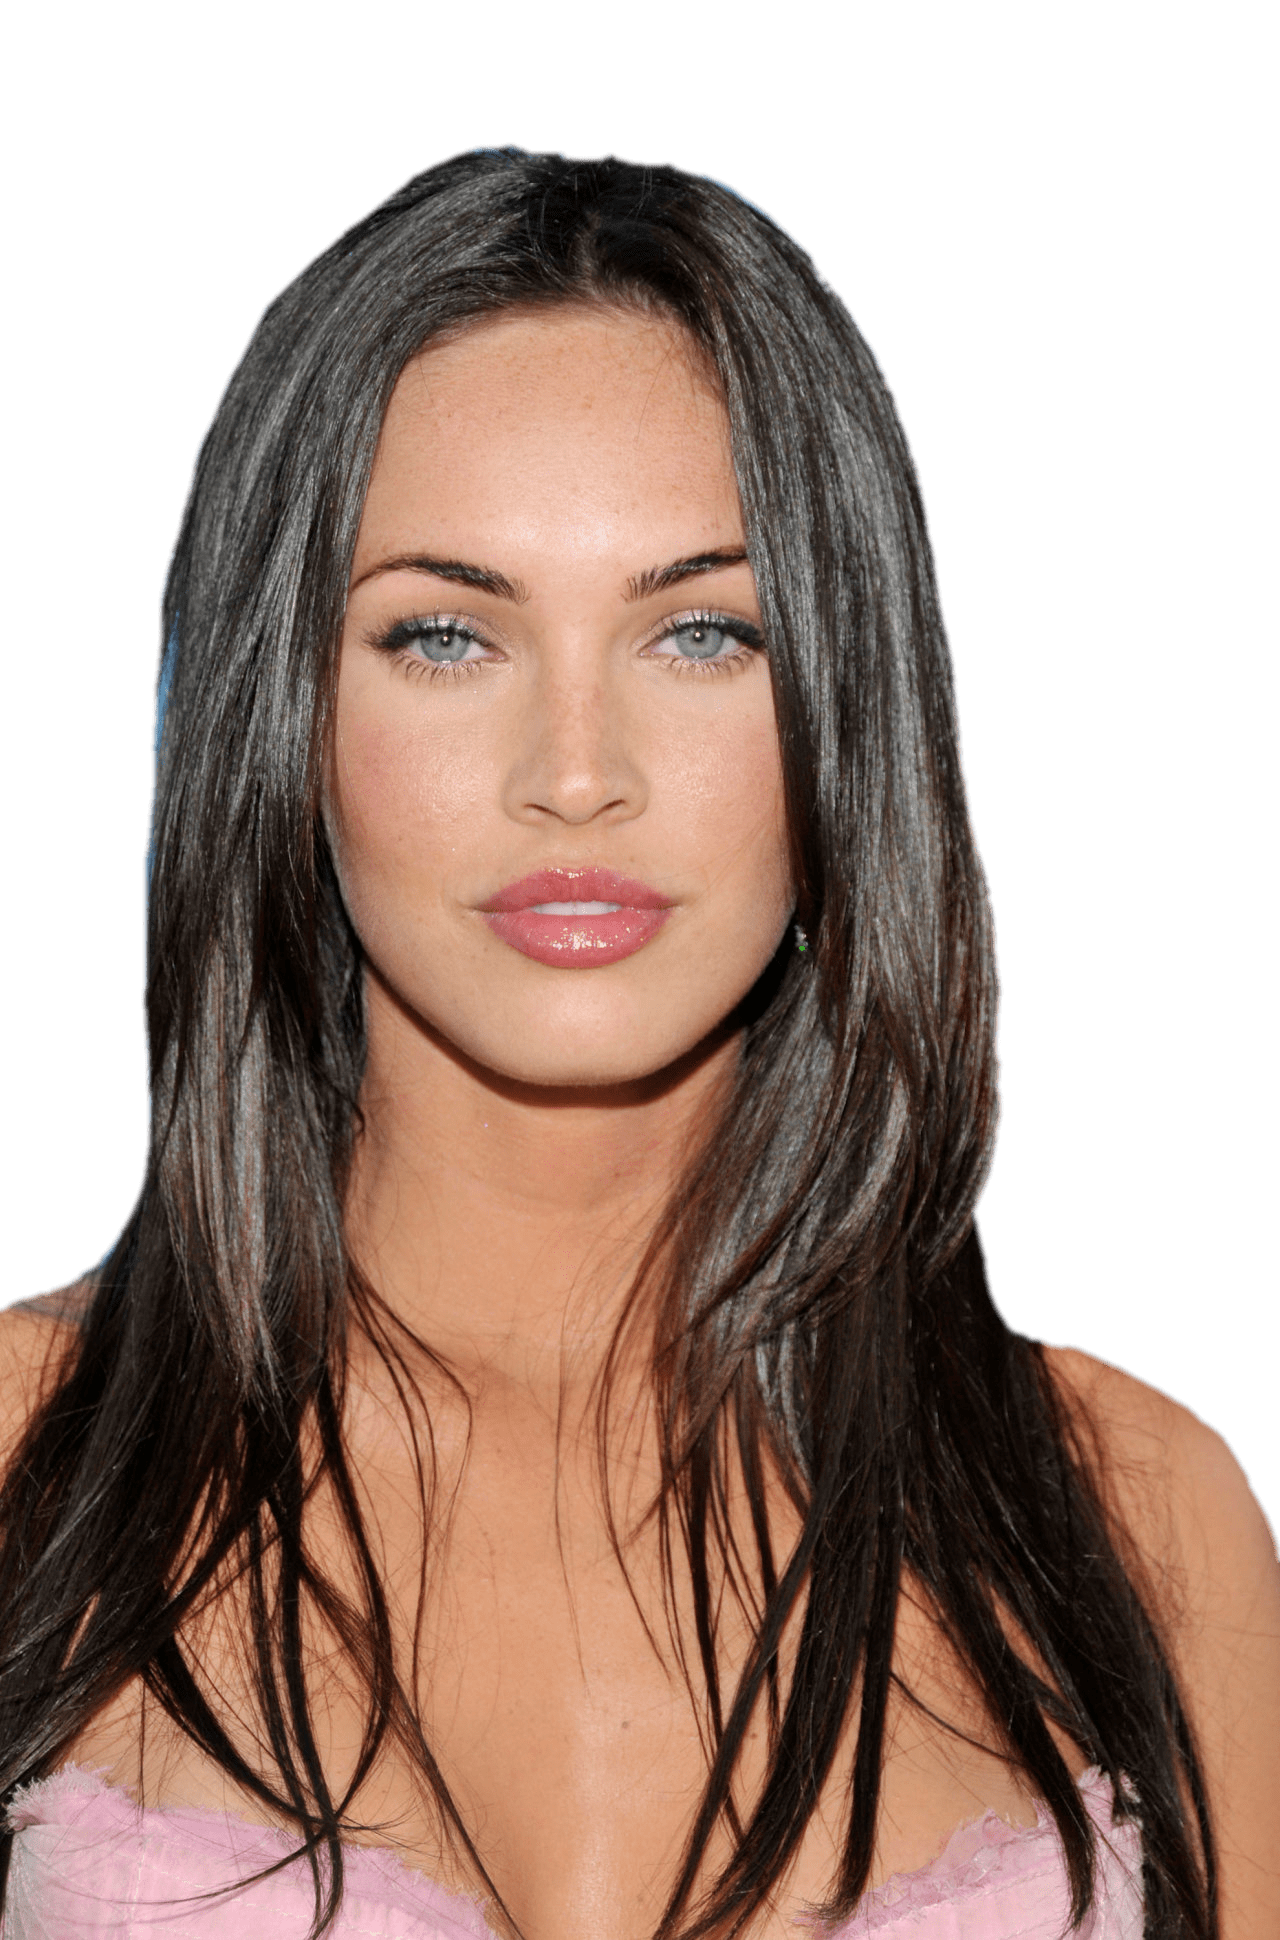 Megan Fox Portrait